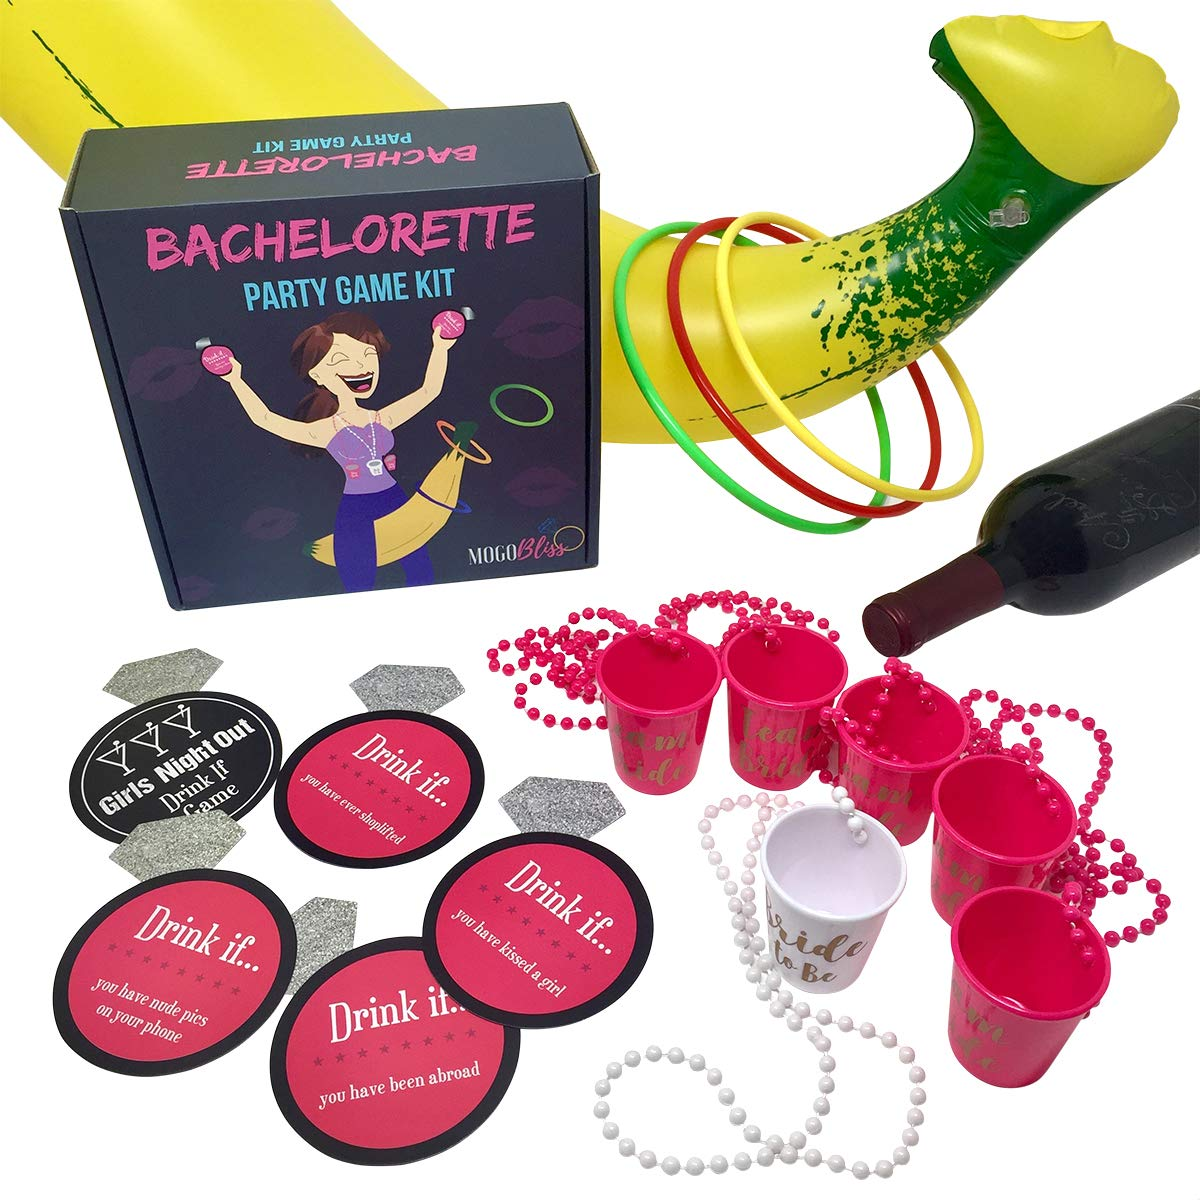 40 PC Bachelorette Party Games Kit | 3 Games in 1 | Banana Ring Toss, ''Drink If'' Card Drinking Game + 6 PK Bridal Shot Glass Necklaces | Naughty & Fun Party Decorations, Favors & Supplies by MOGObliss